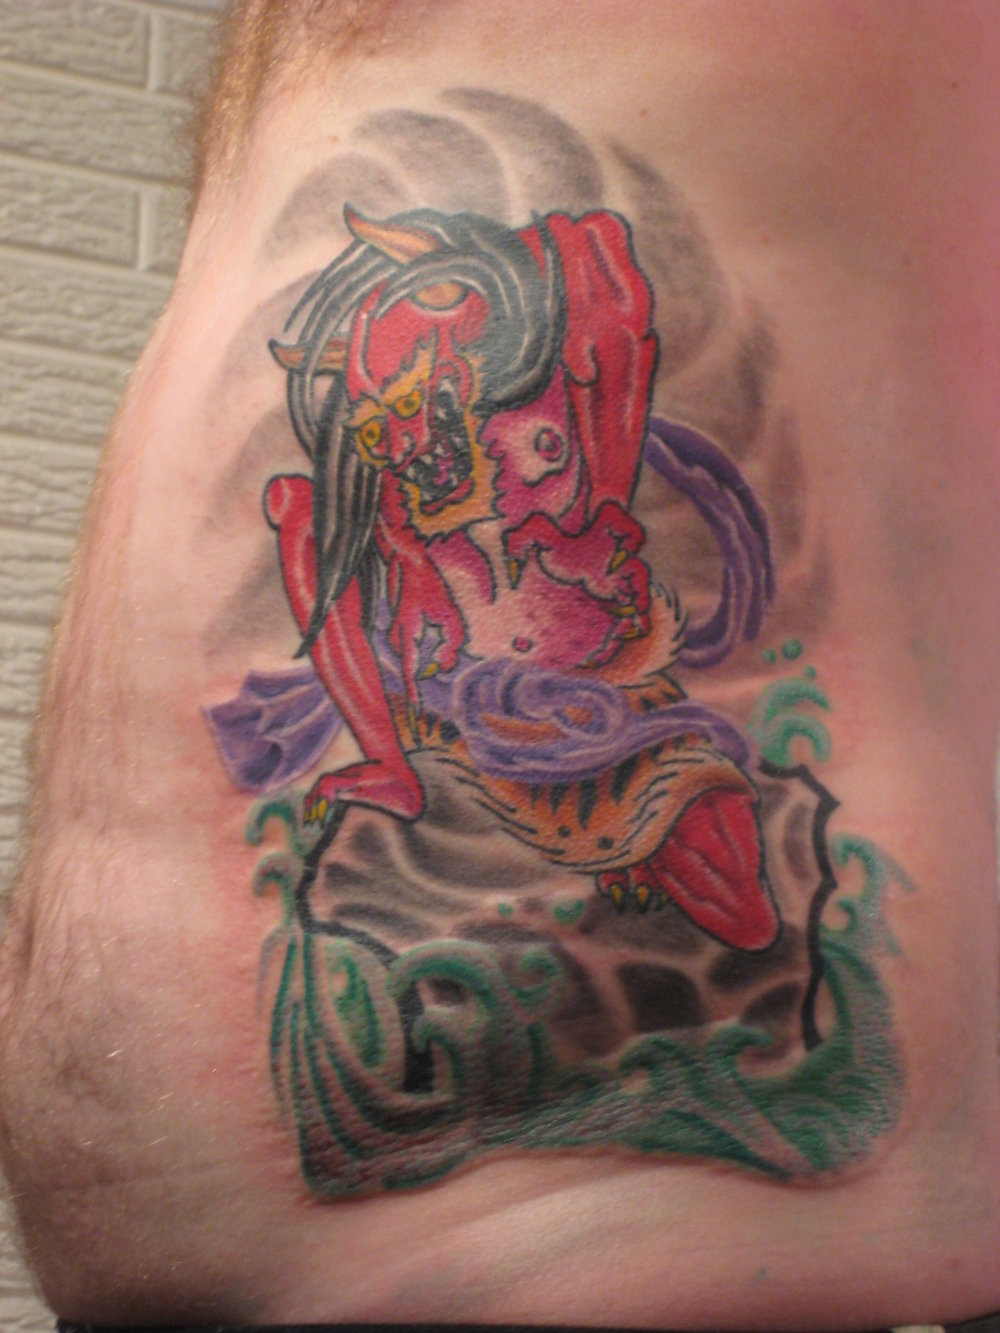 Sioux Falls Tattoo Artist, Rob Trimble, Permanent Addictions Tattoo.